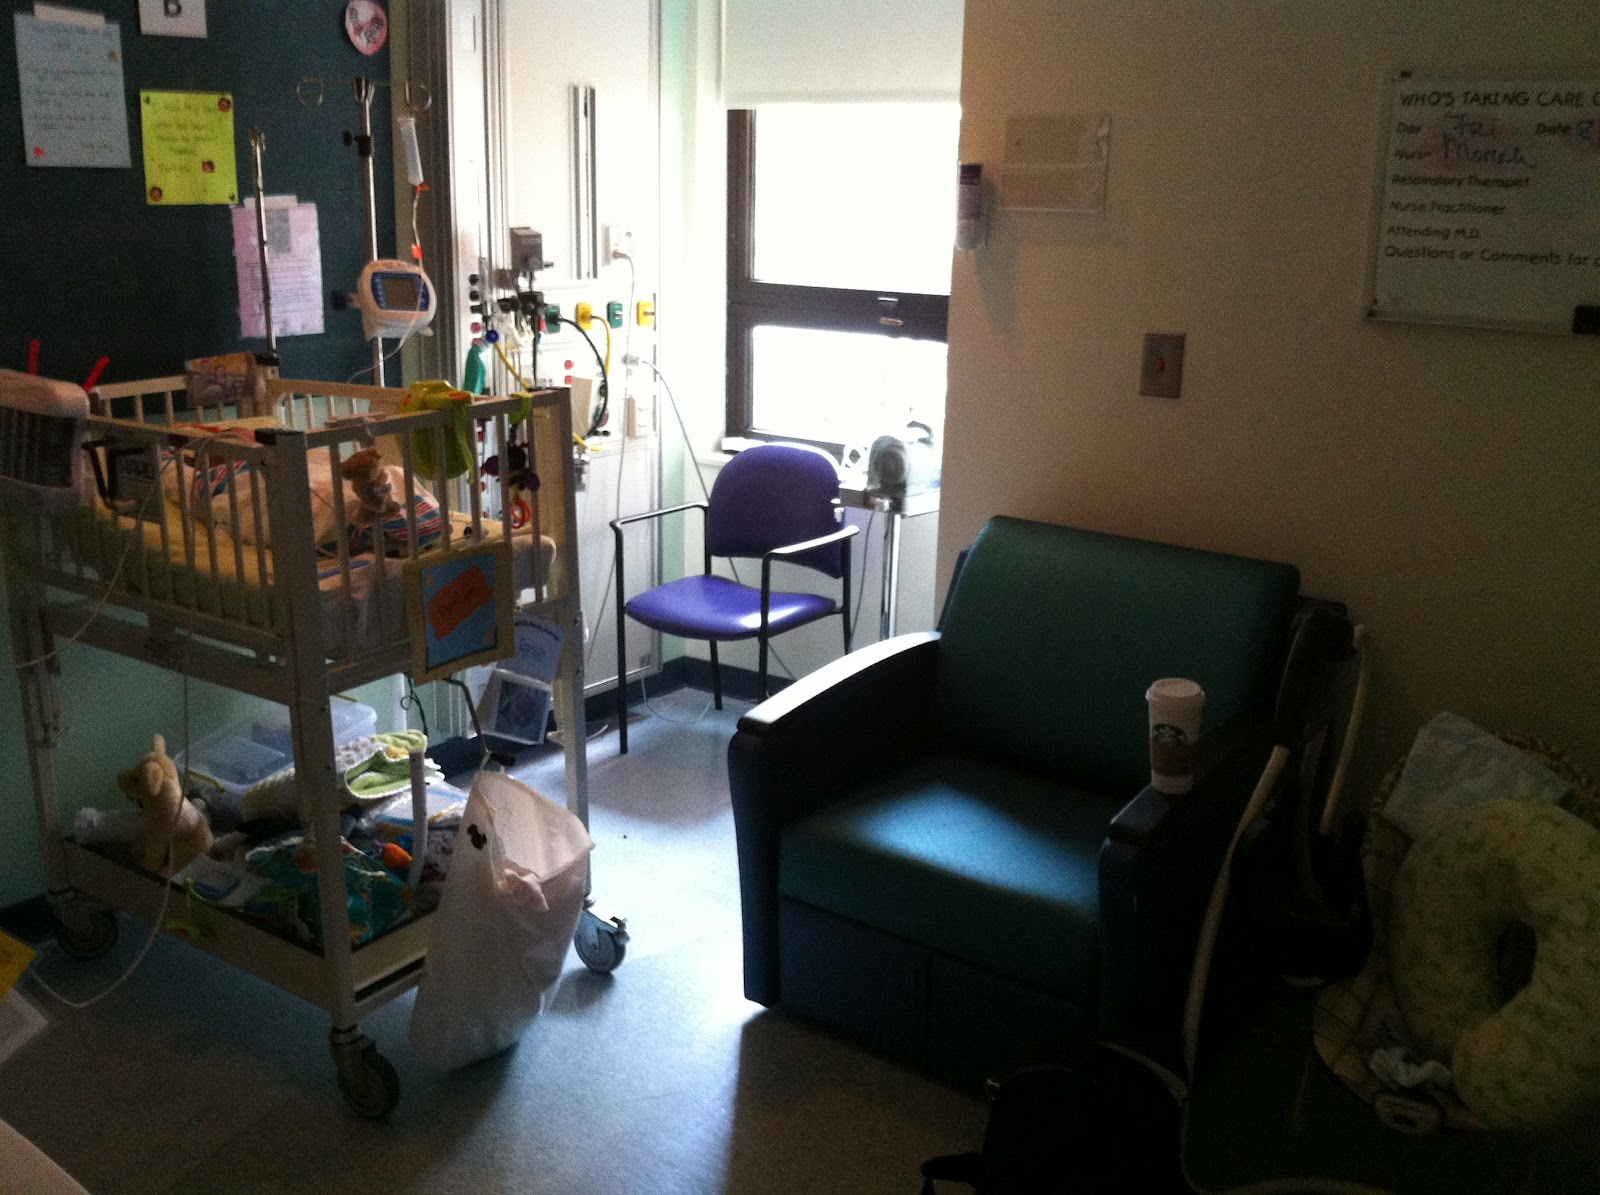 Hospital Sleeper Chair Revolving Base Online The Knolls It 39s How We Roll August 2012